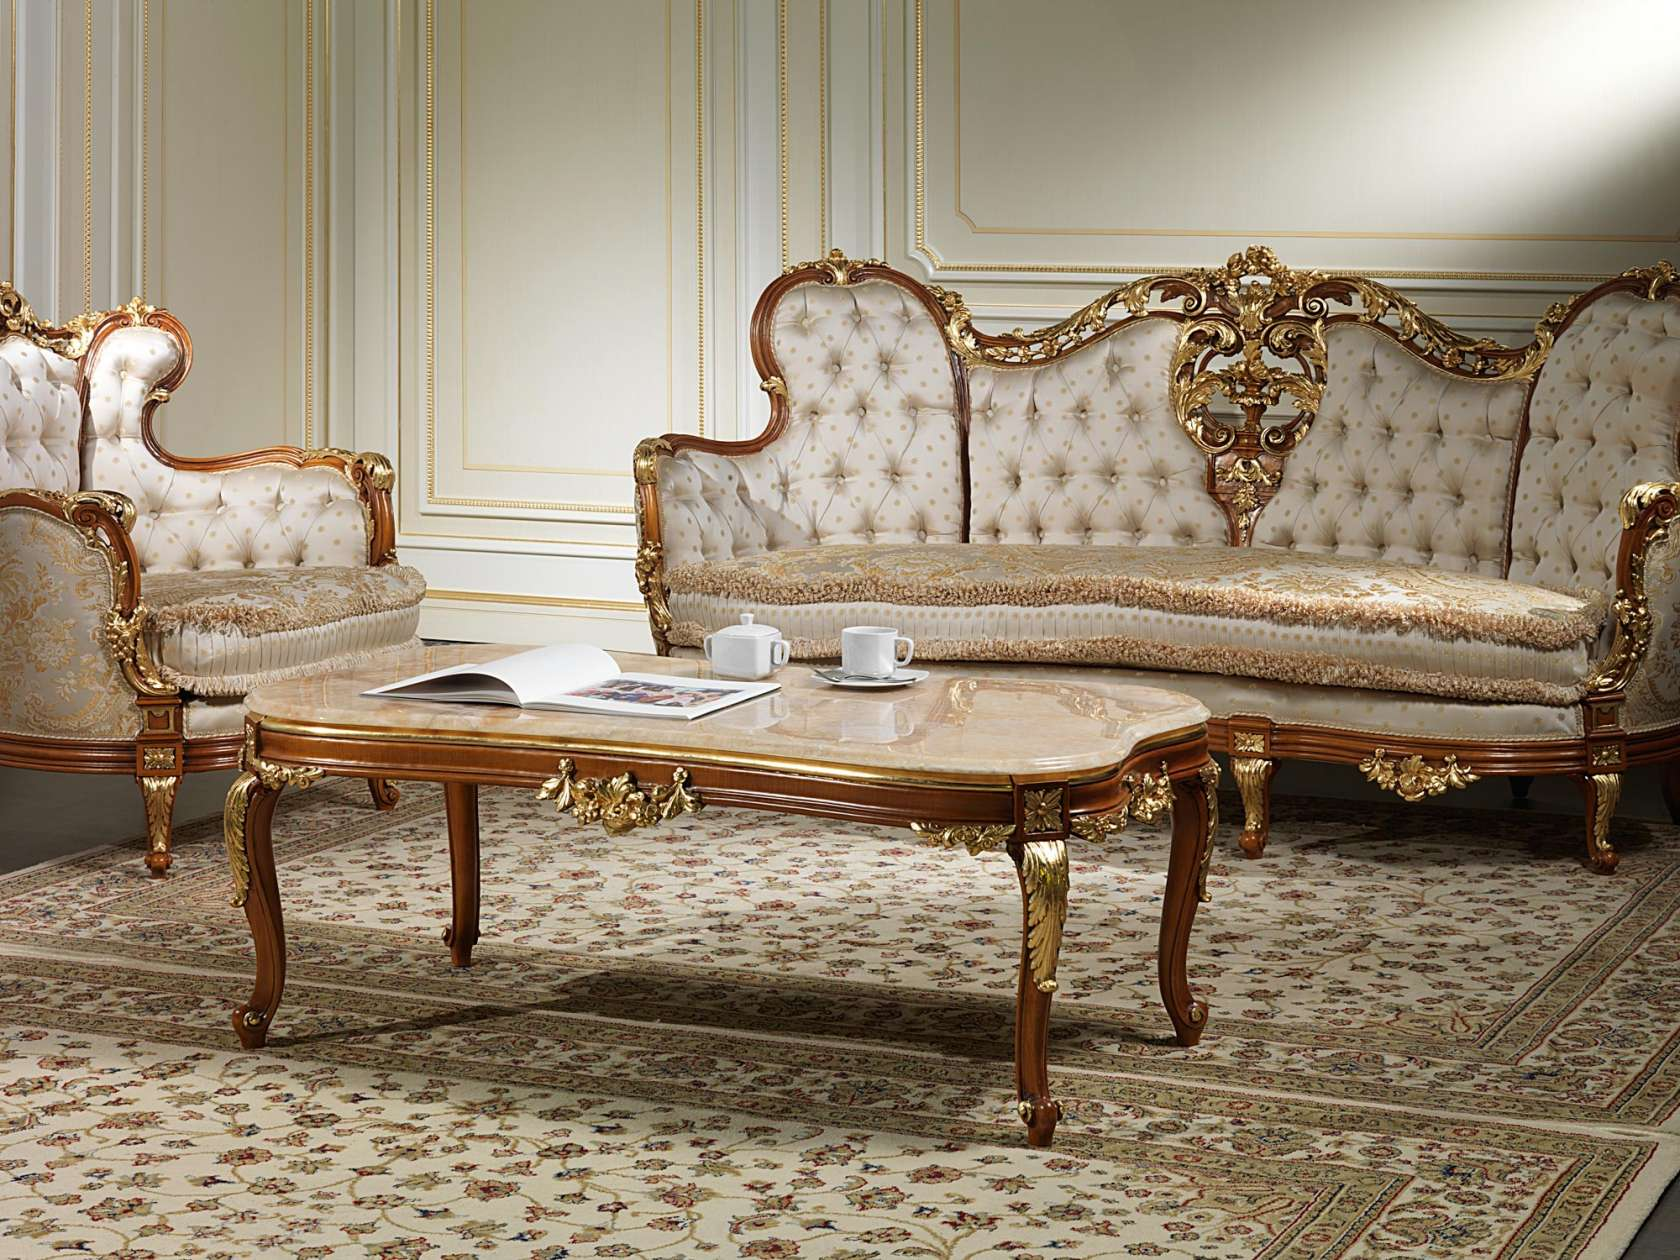 Sofas 800 artisan production, and in classic luxury style ...